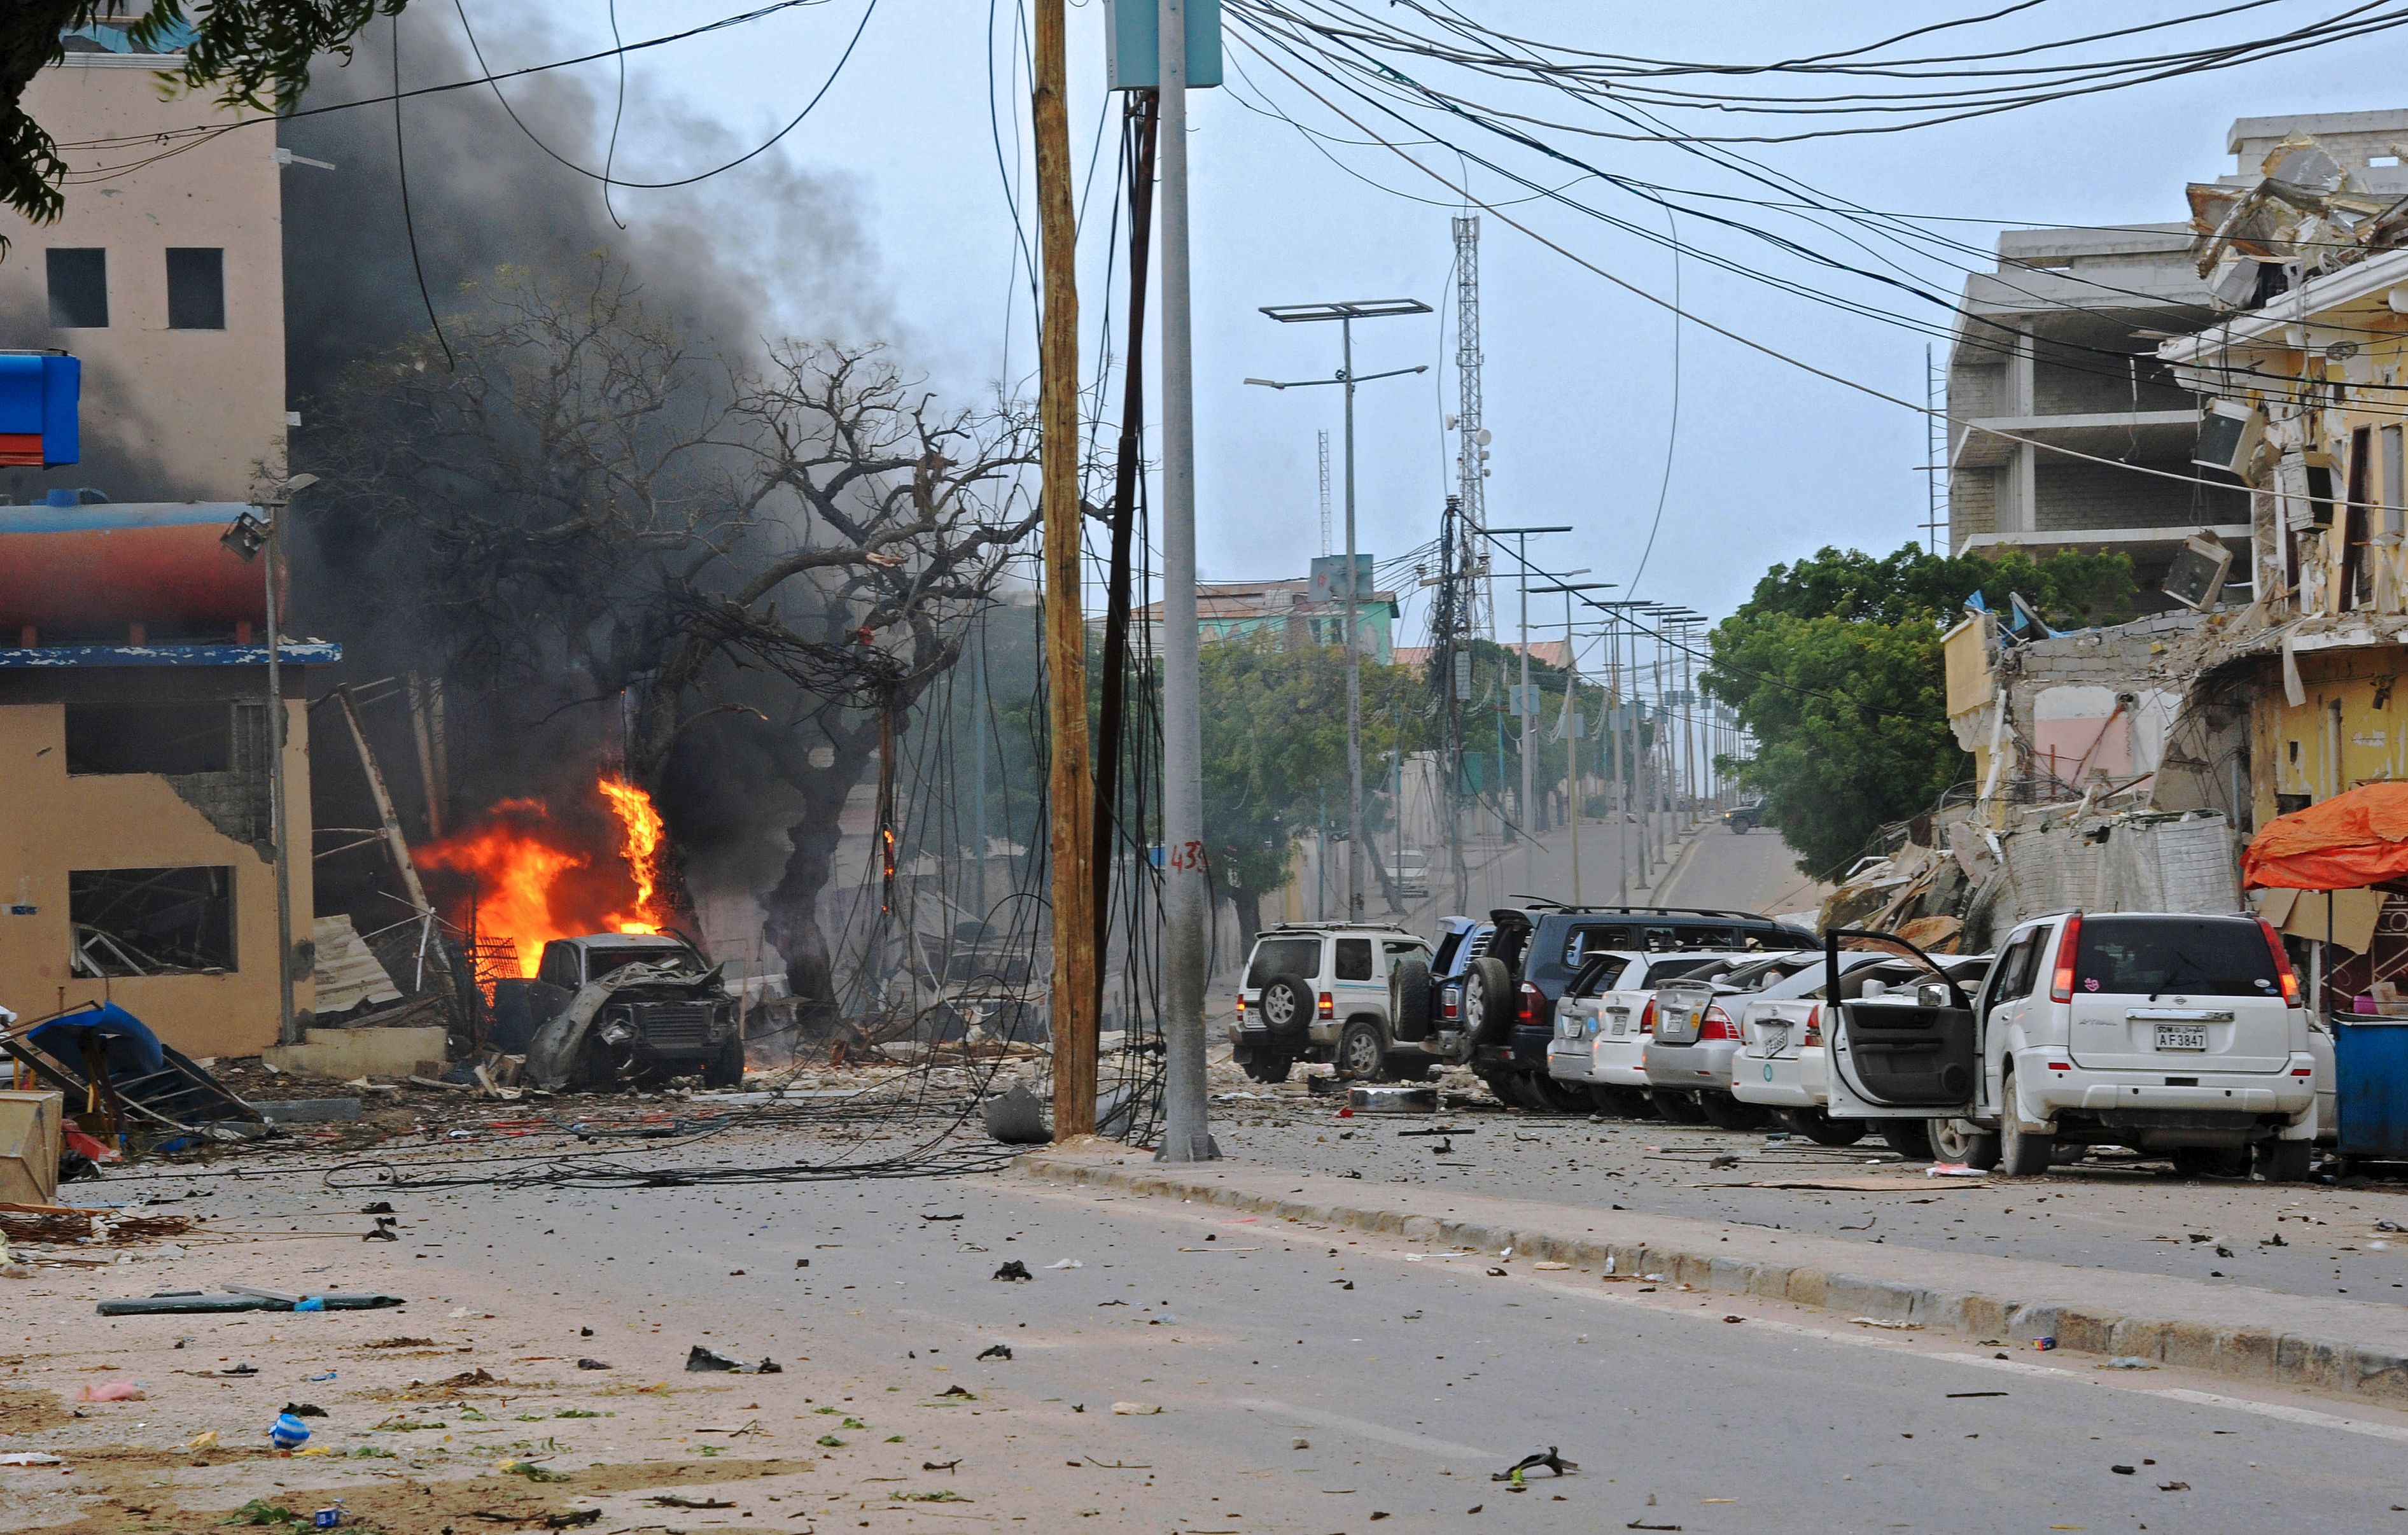 Fire is seen at the scene of a car bomb attack claimed by al-Qaeda-affiliated al-Shabaab militants on the Naasa Hablood hotel in Mogadishu on June 25, 2016. (Mohamed Abdiwahab/AFP/Getty Images)